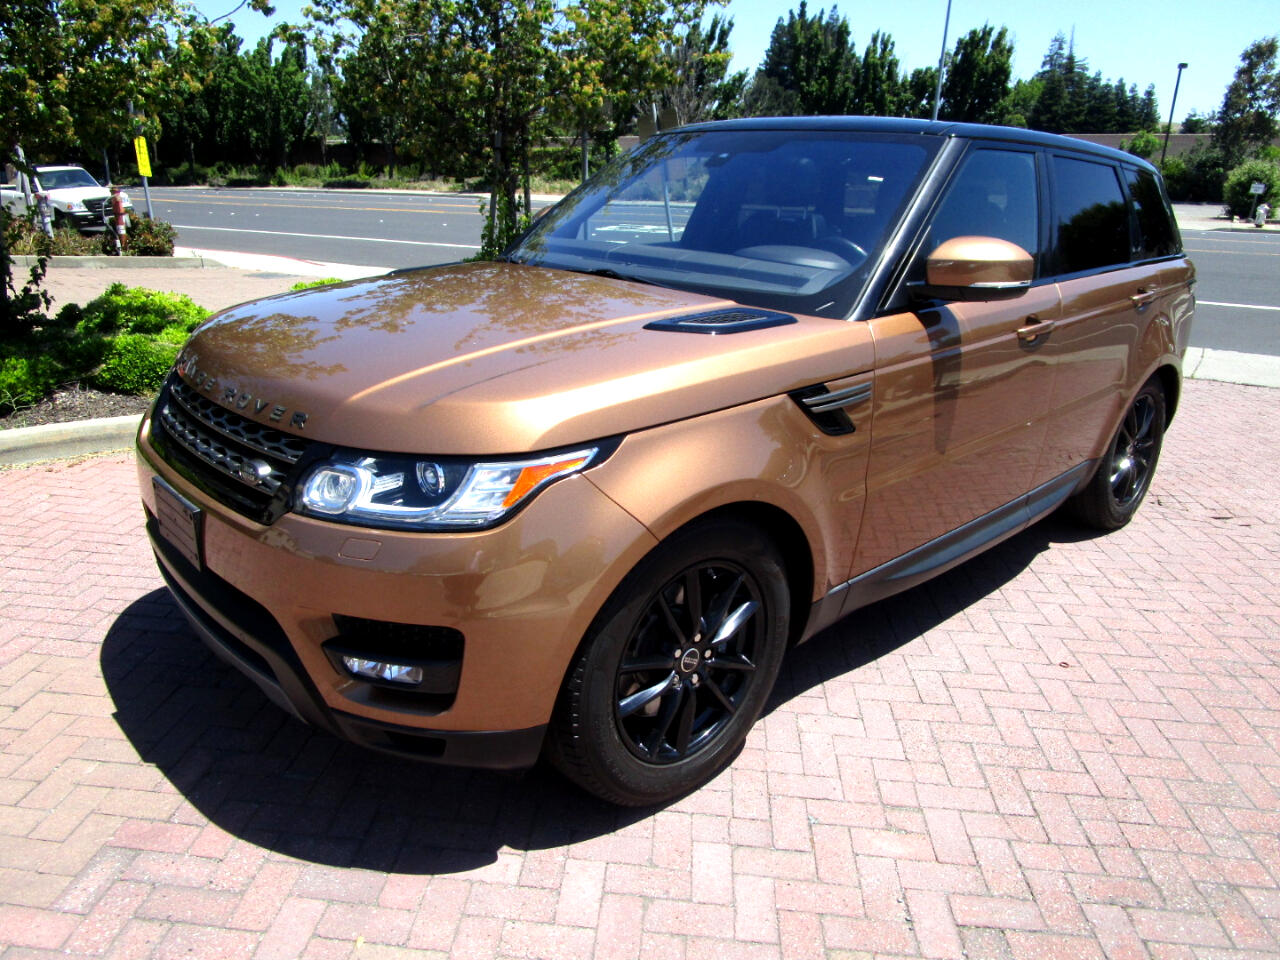 2016 Land Rover Range Rover Sport SUPERCHARGED 3.0 LITER**HEAT SEATS*PANO*BLIND SPOT